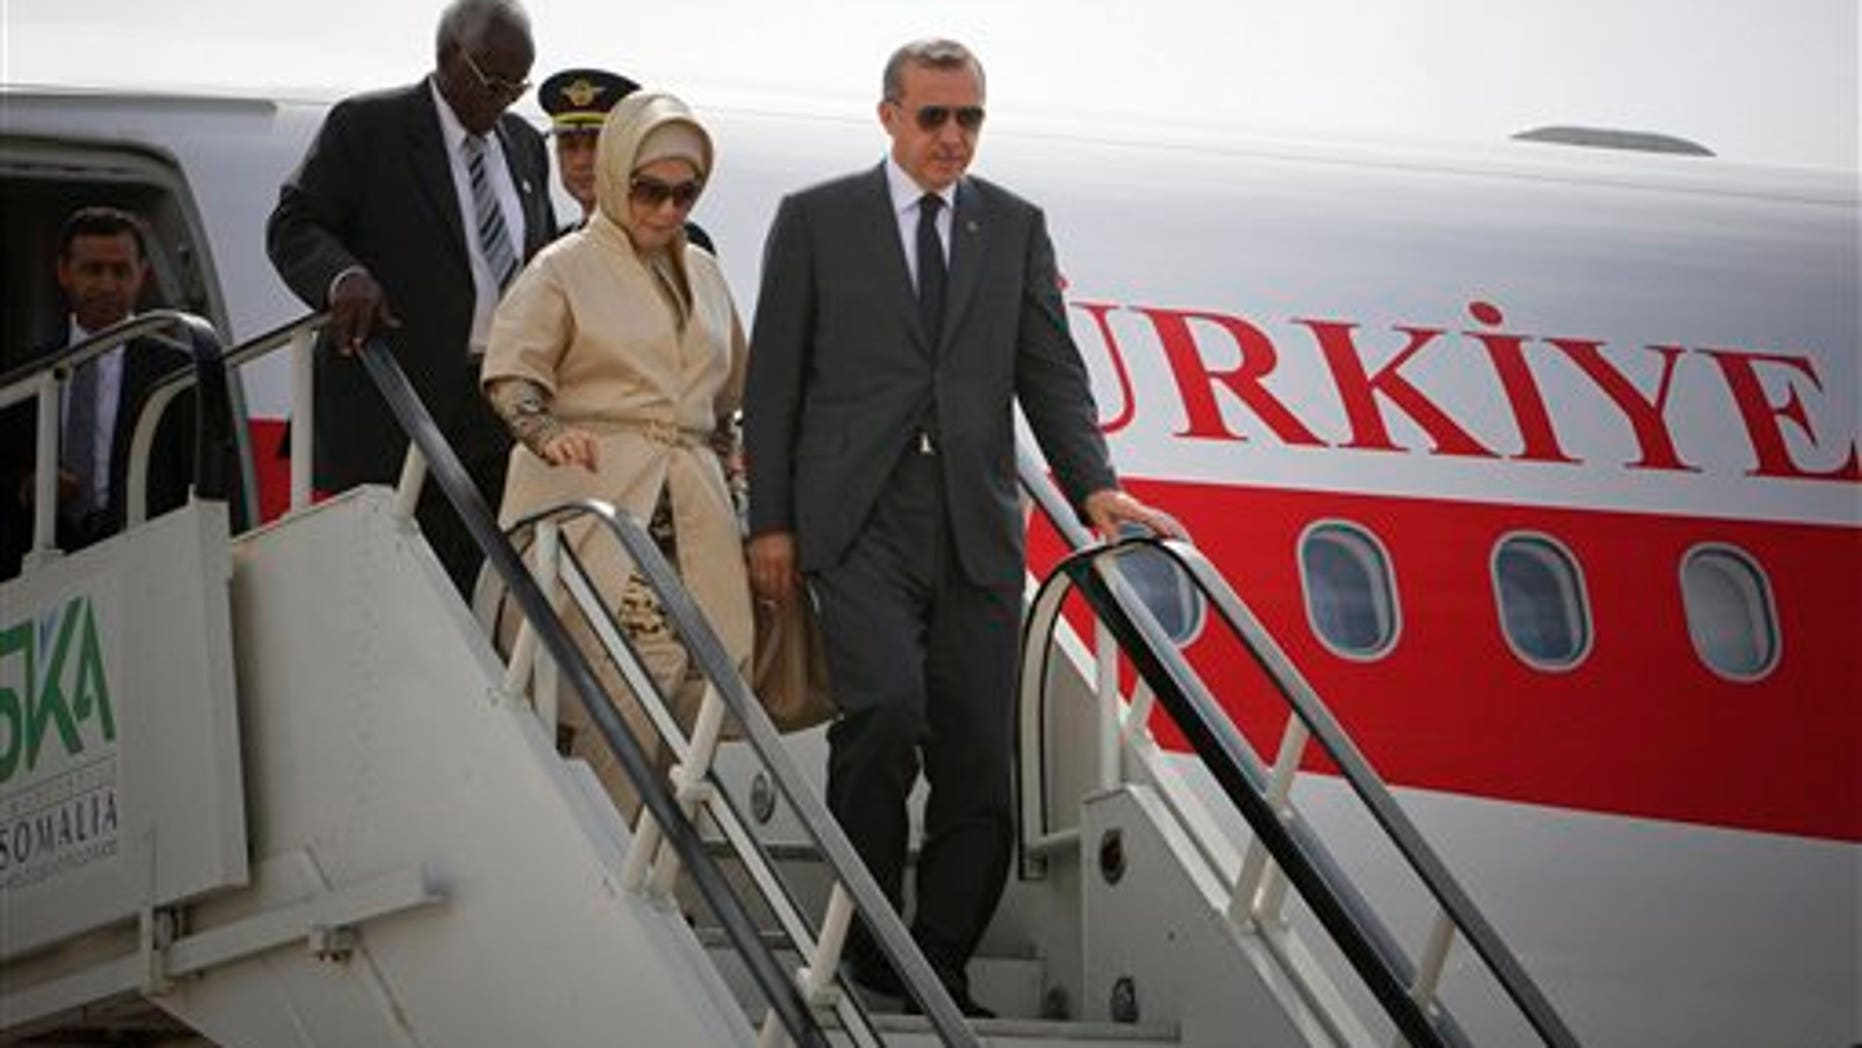 August 19: Turkish Prime Minister Recep Tayyip Erdogan and his wife Emine Erdogan disembark from their plane at Aden Abdulle International Airport on their first official visit to Somalia.